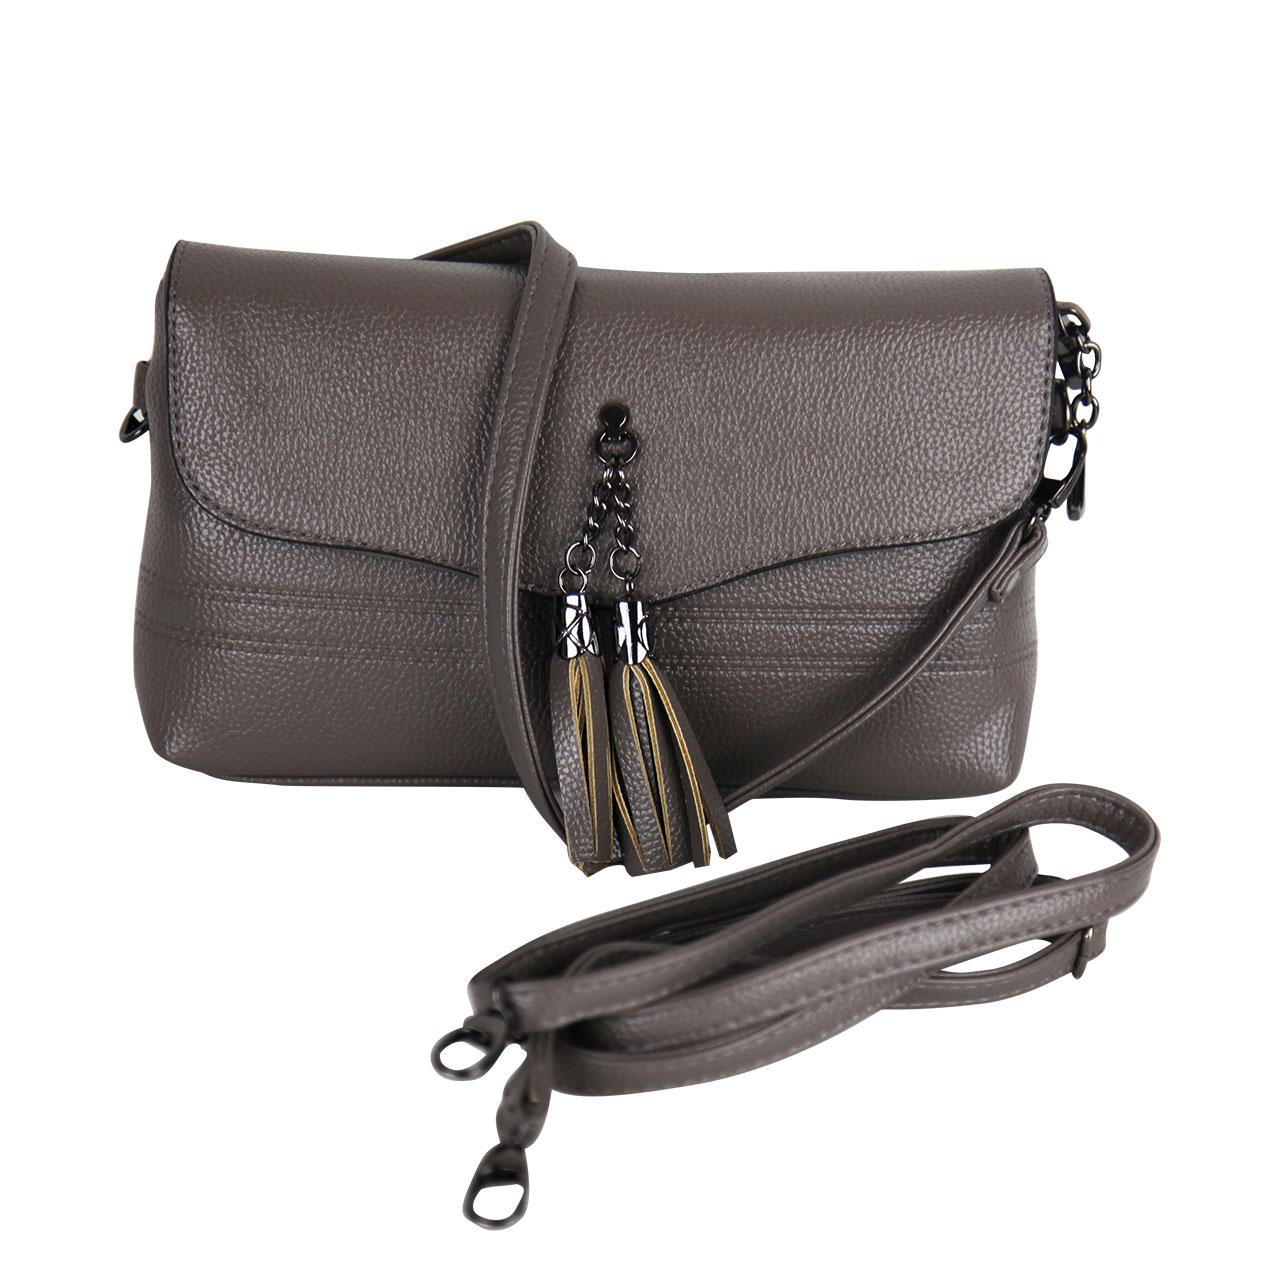 Classy Ash Clutch Luxury Leather Crossbody Bag With Wide Strap For Women